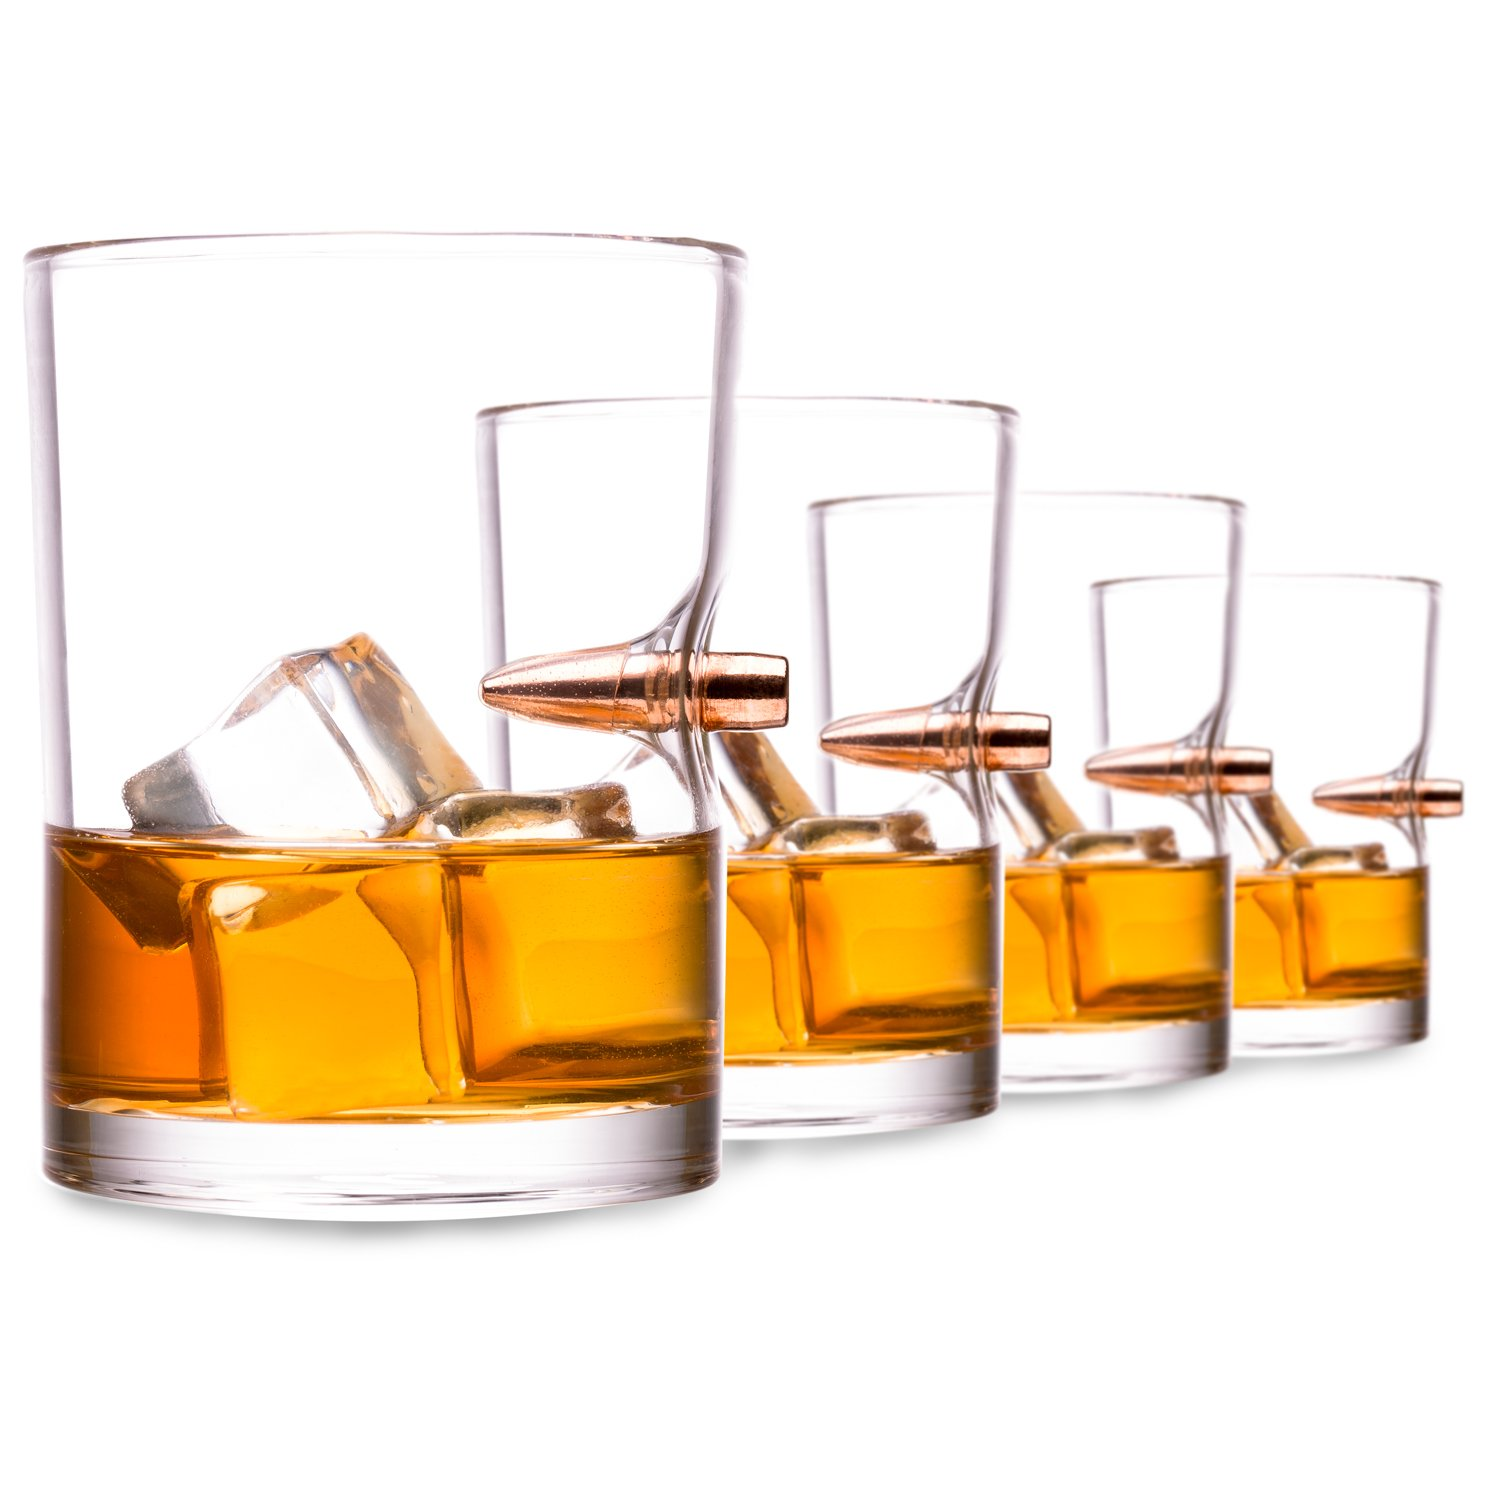 Lucky Shot .308 RealBullet HandmadeWhiskey Glass - Set of 4 by Lucky Shot (Image #2)